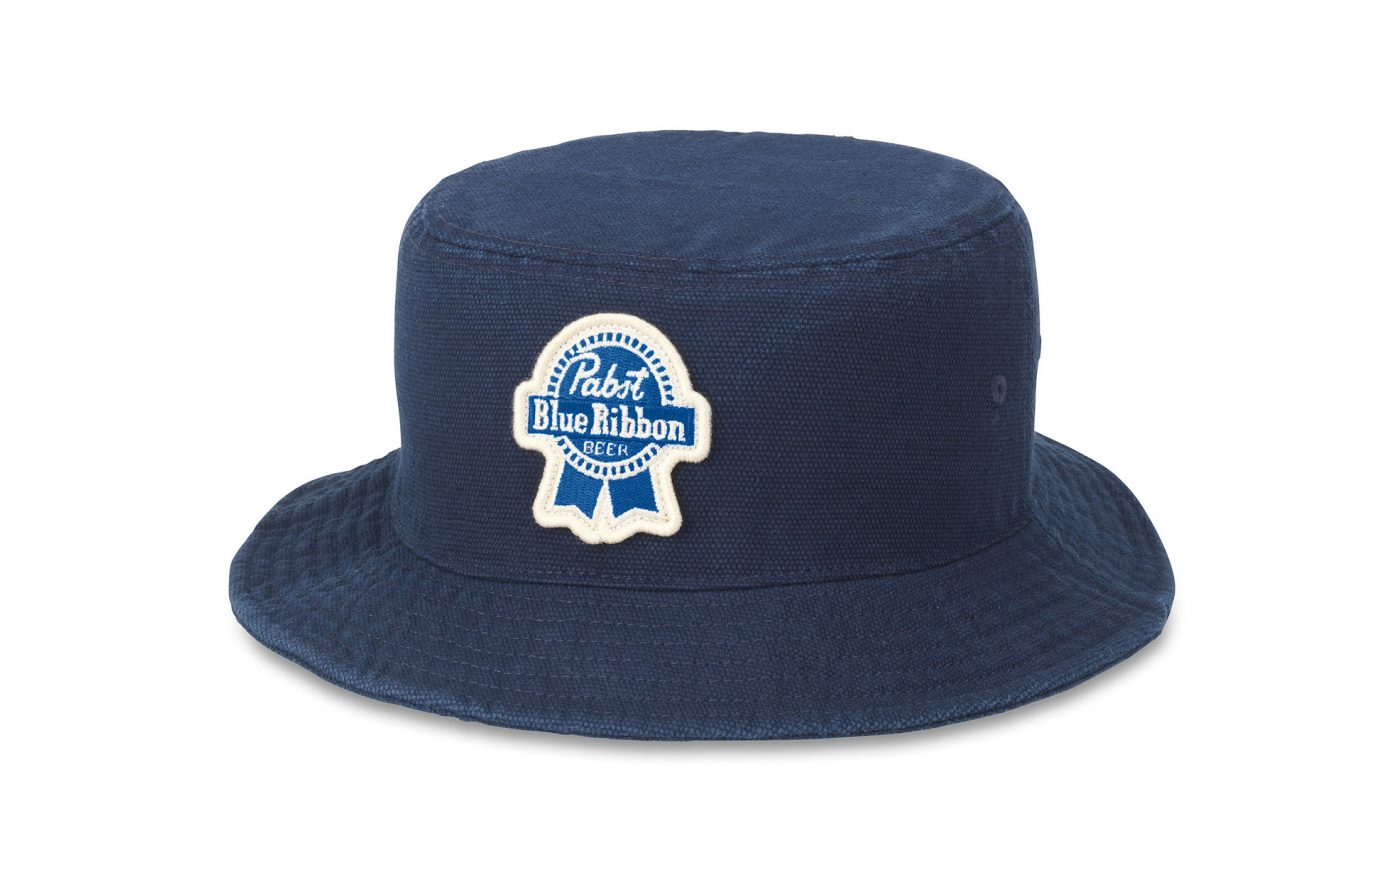 Pabst Blue Ribbon Forrester Bucket Hat - Generation T 76fc3e98647